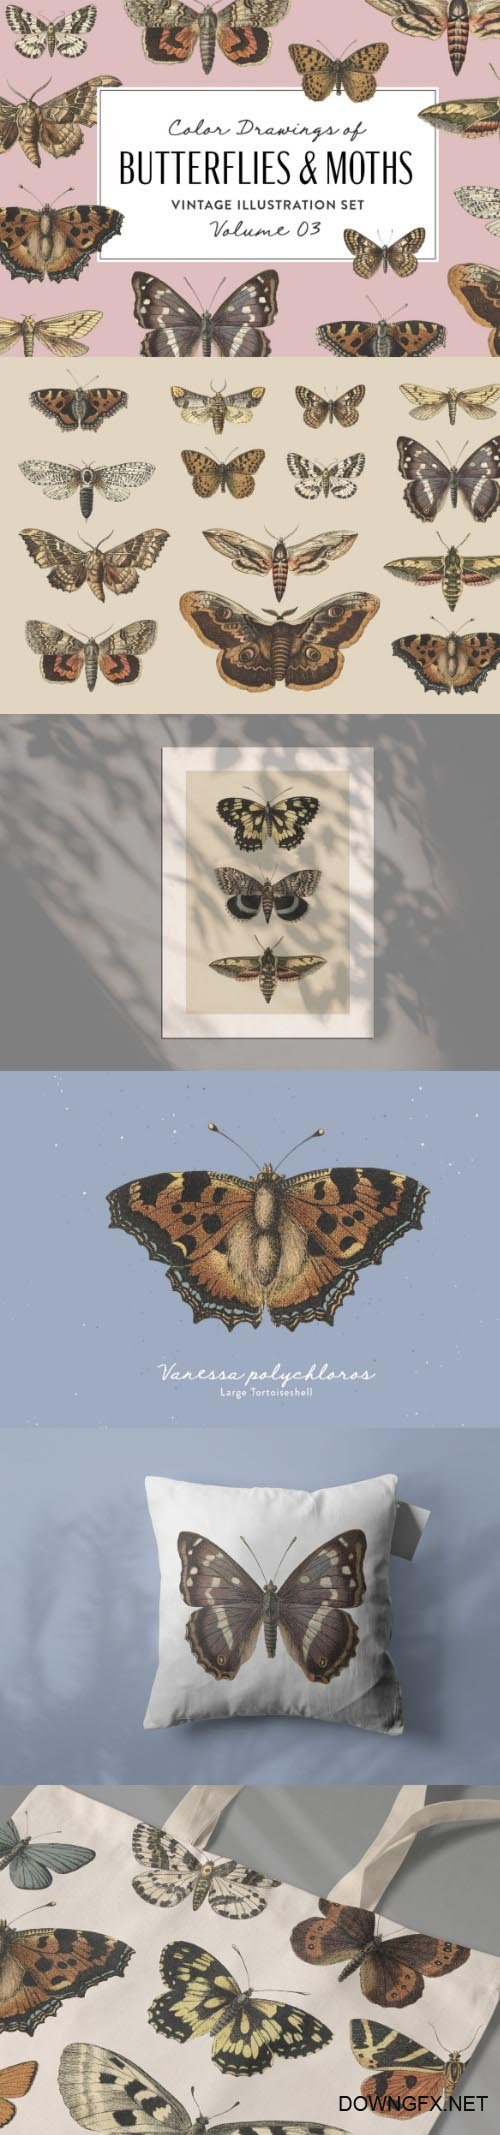 Butterflies & Moths Vintage Graphics Vol. 3 PNG